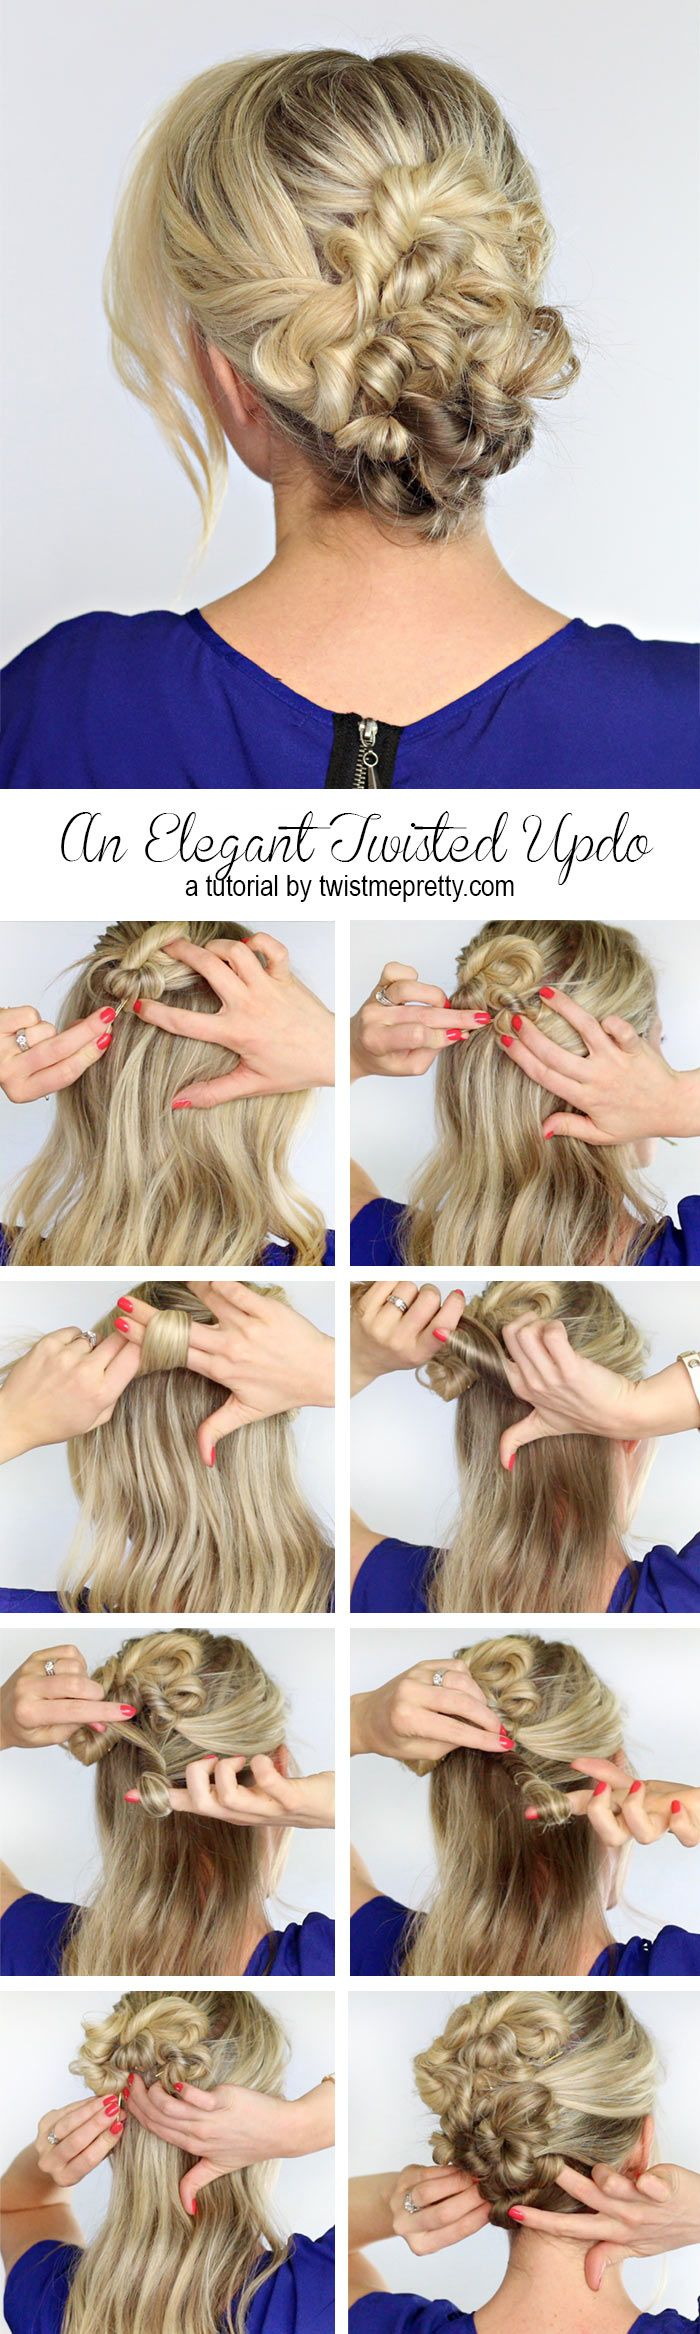 A quick and gorgeous updo for long hair this girl makes elegant twisted updo a quick and gorgeous updo for long hair this girl makes everything so easy her videos are amazing pmusecretfo Choice Image